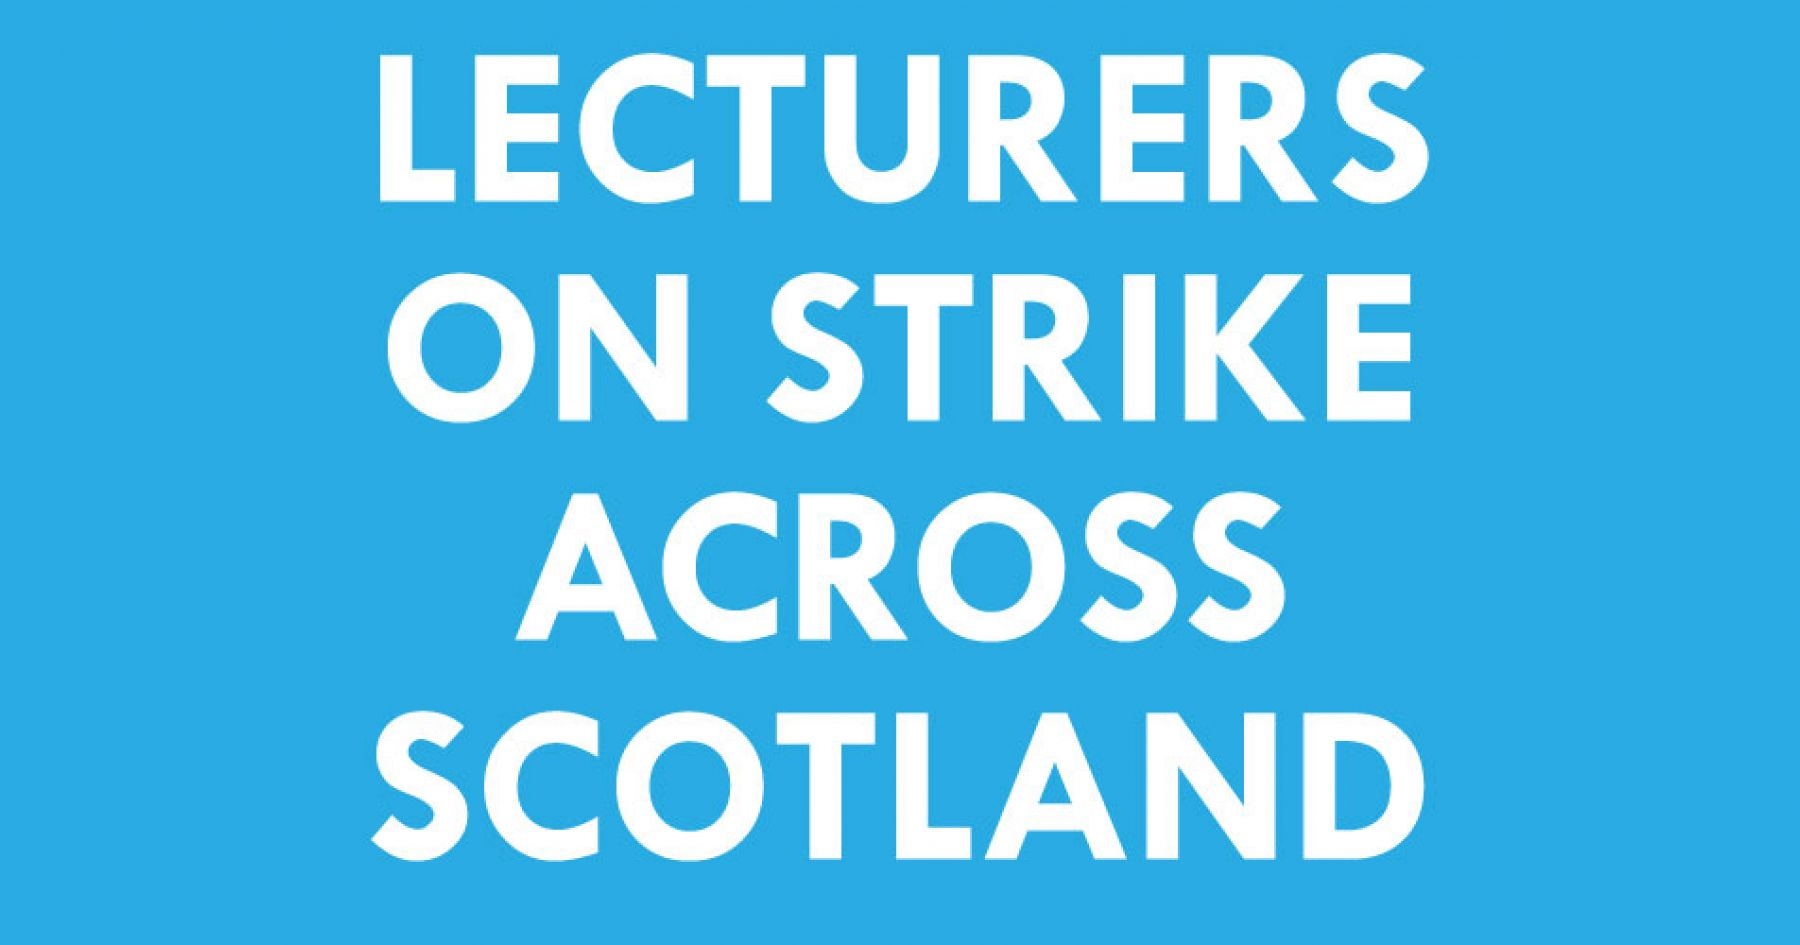 Lecturers on strike across Scotland